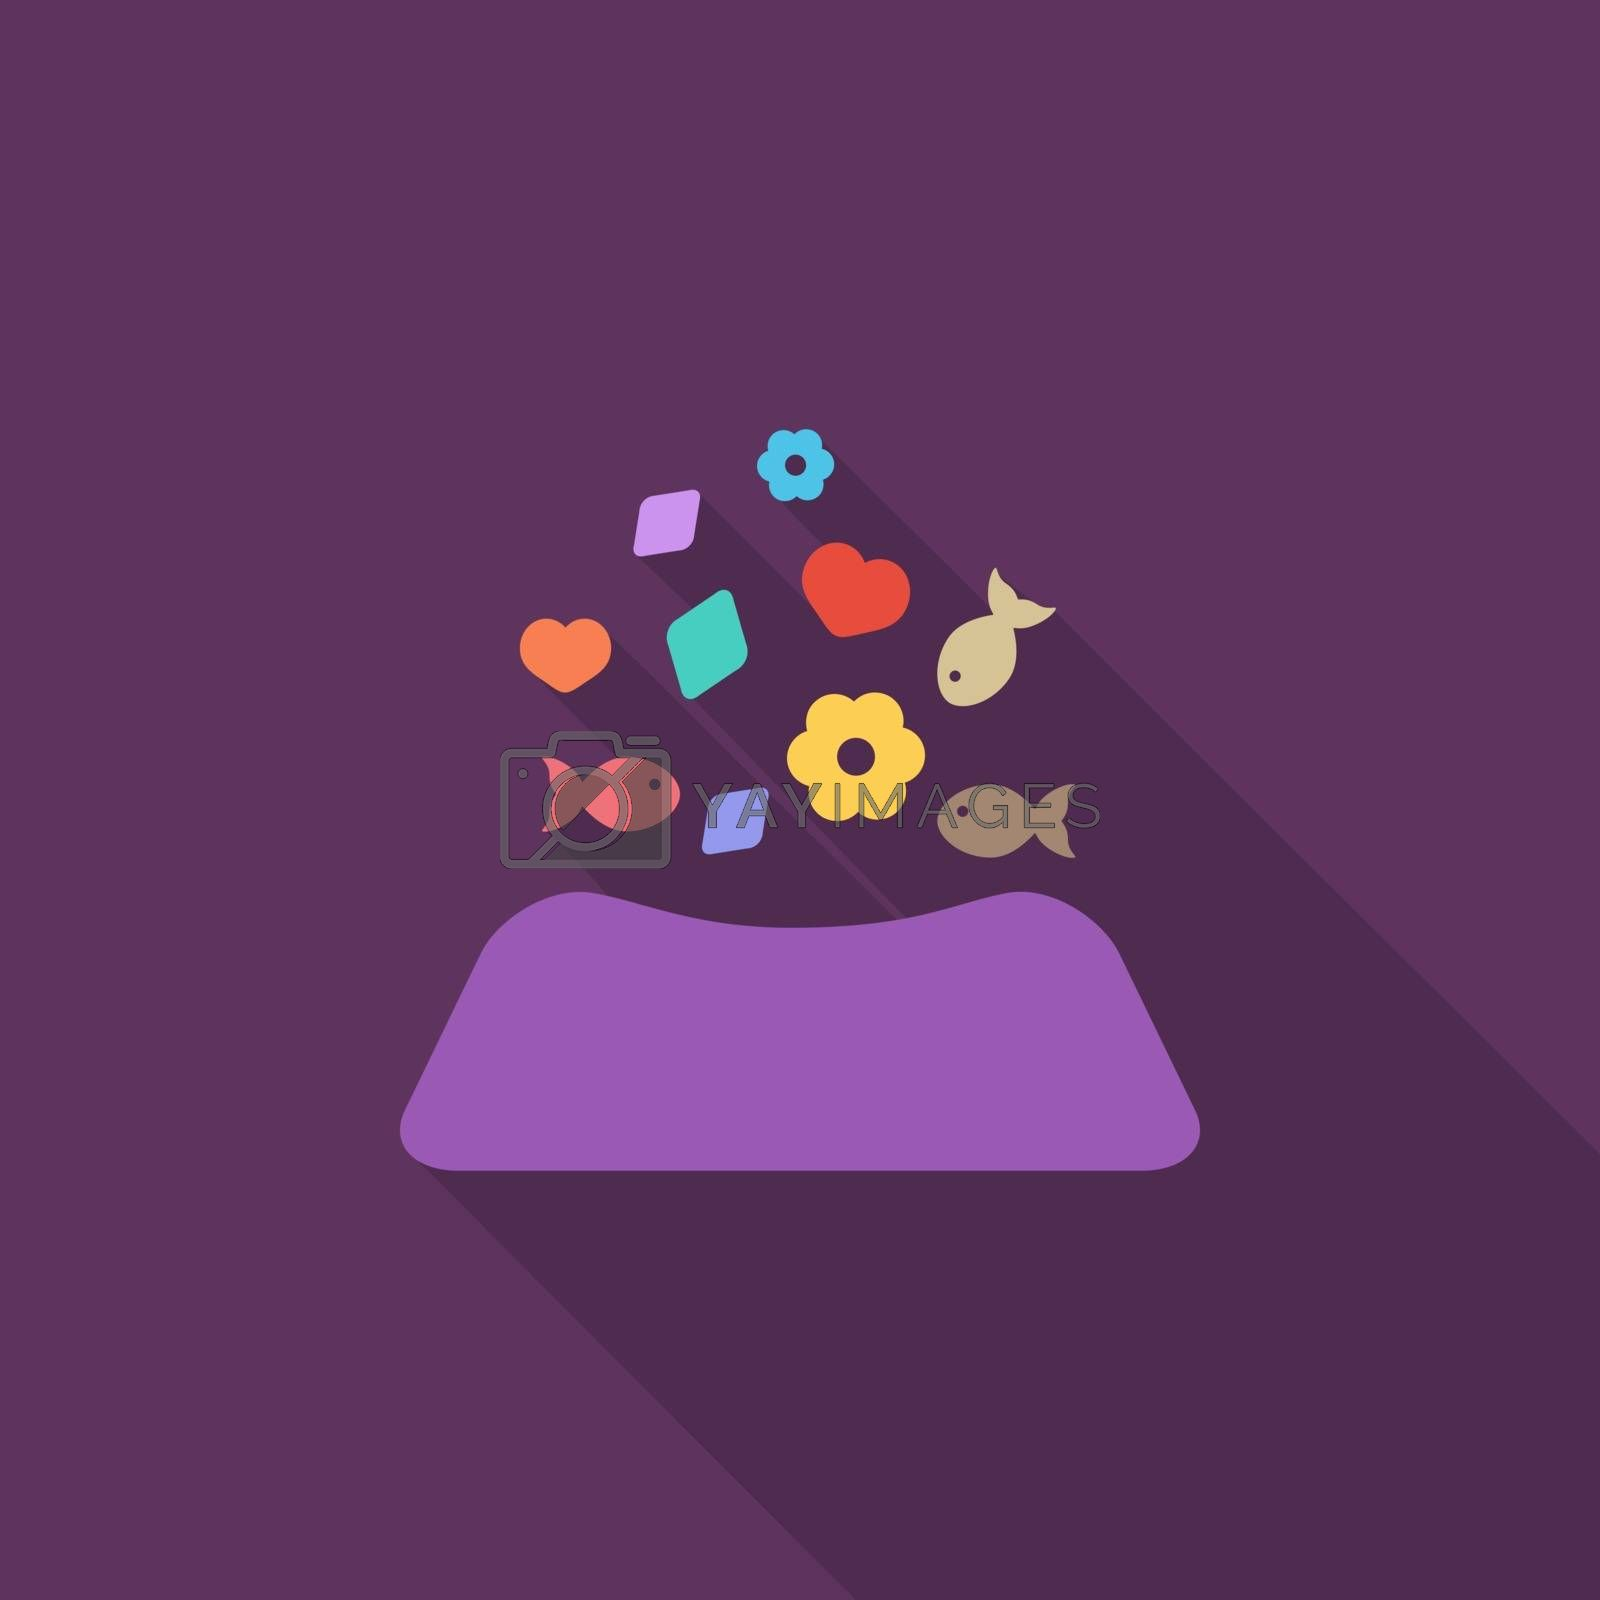 Animal bowl icon. Flat vector related icon for web and mobile applications. It can be used as - logo, pictogram, icon, infographic element. Vector Illustration.